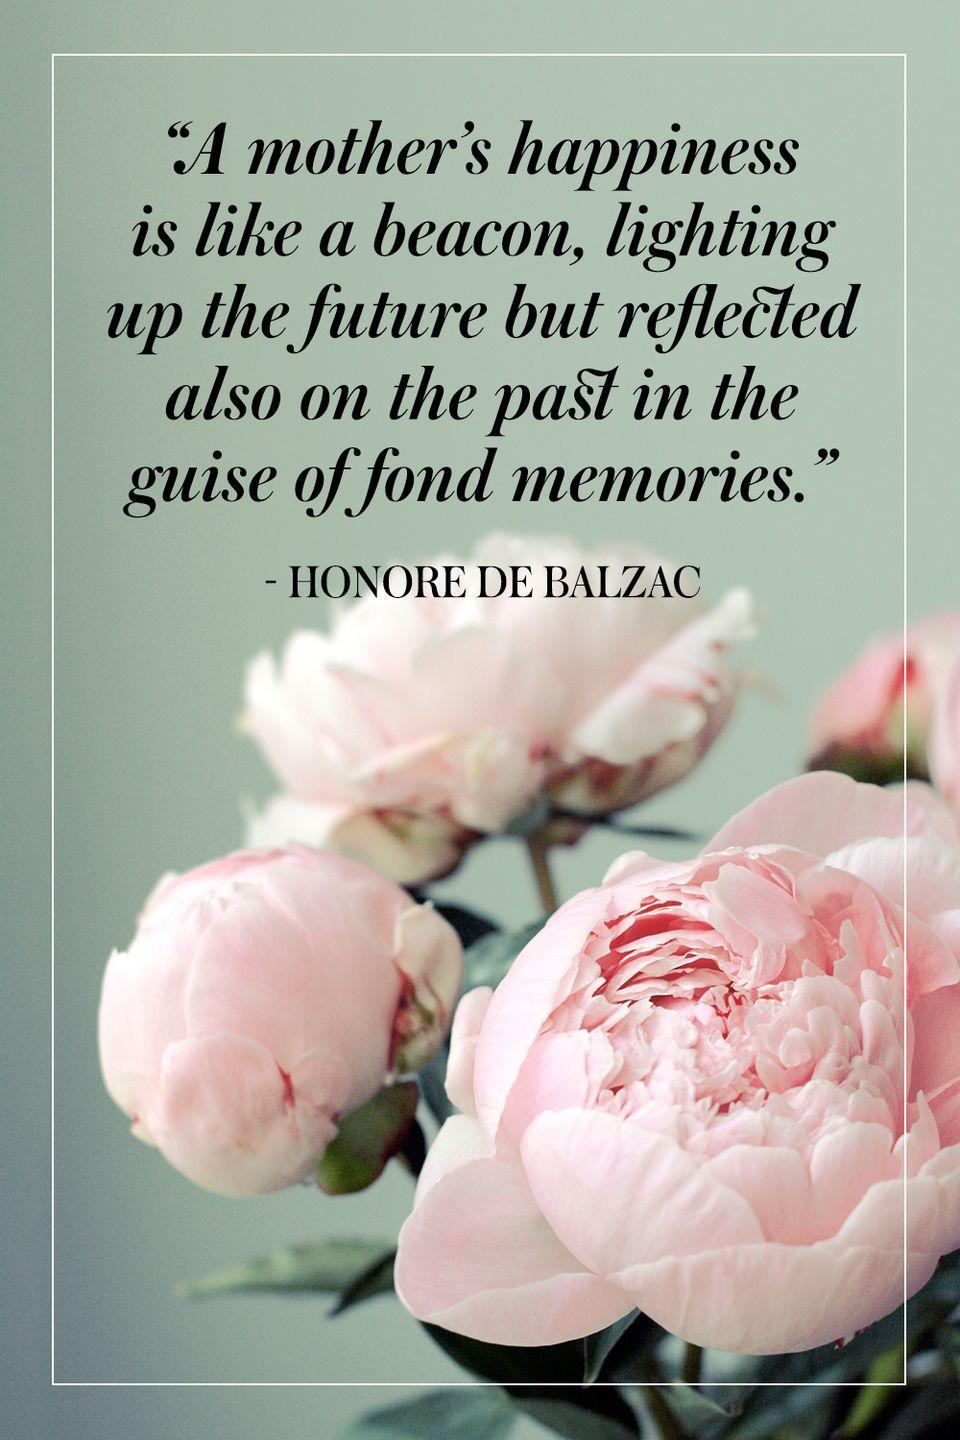 """<p>""""A mother's happiness is like a beacon, lighting up the future but reflected also on the past in the guise of fond memories.""""</p><p>- Honore de Balzac</p>"""